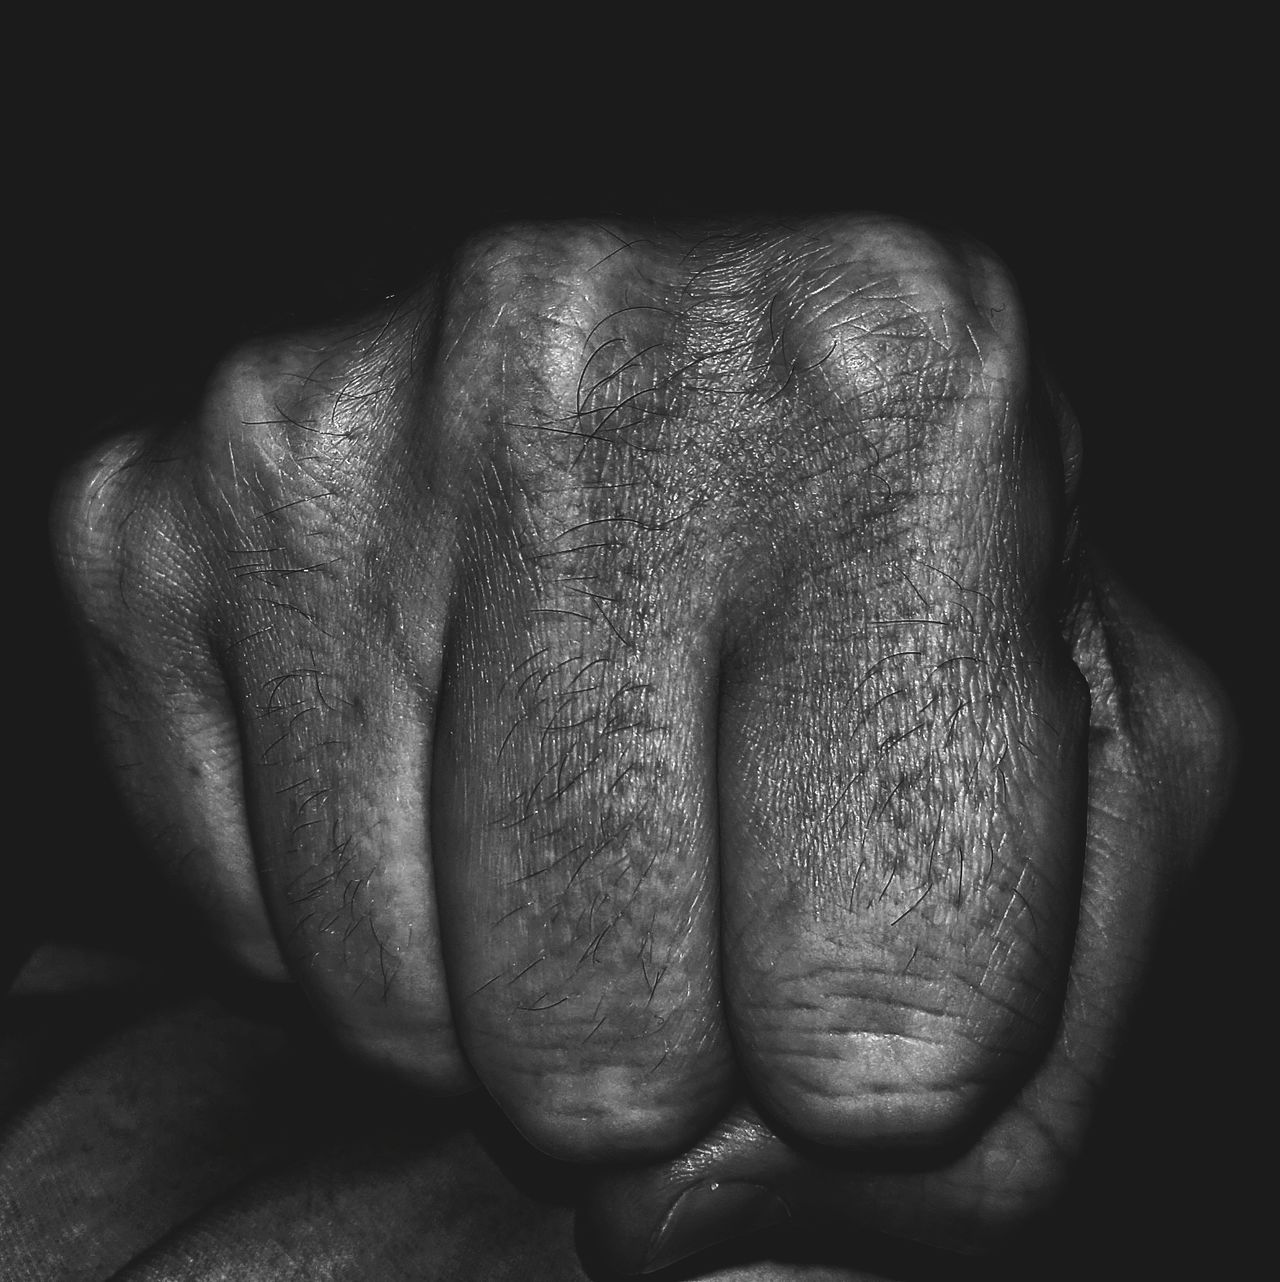 Fist Faust Human Hand Hand Black Background Blackandwhite Photography Blackandwhite Dark Black Background